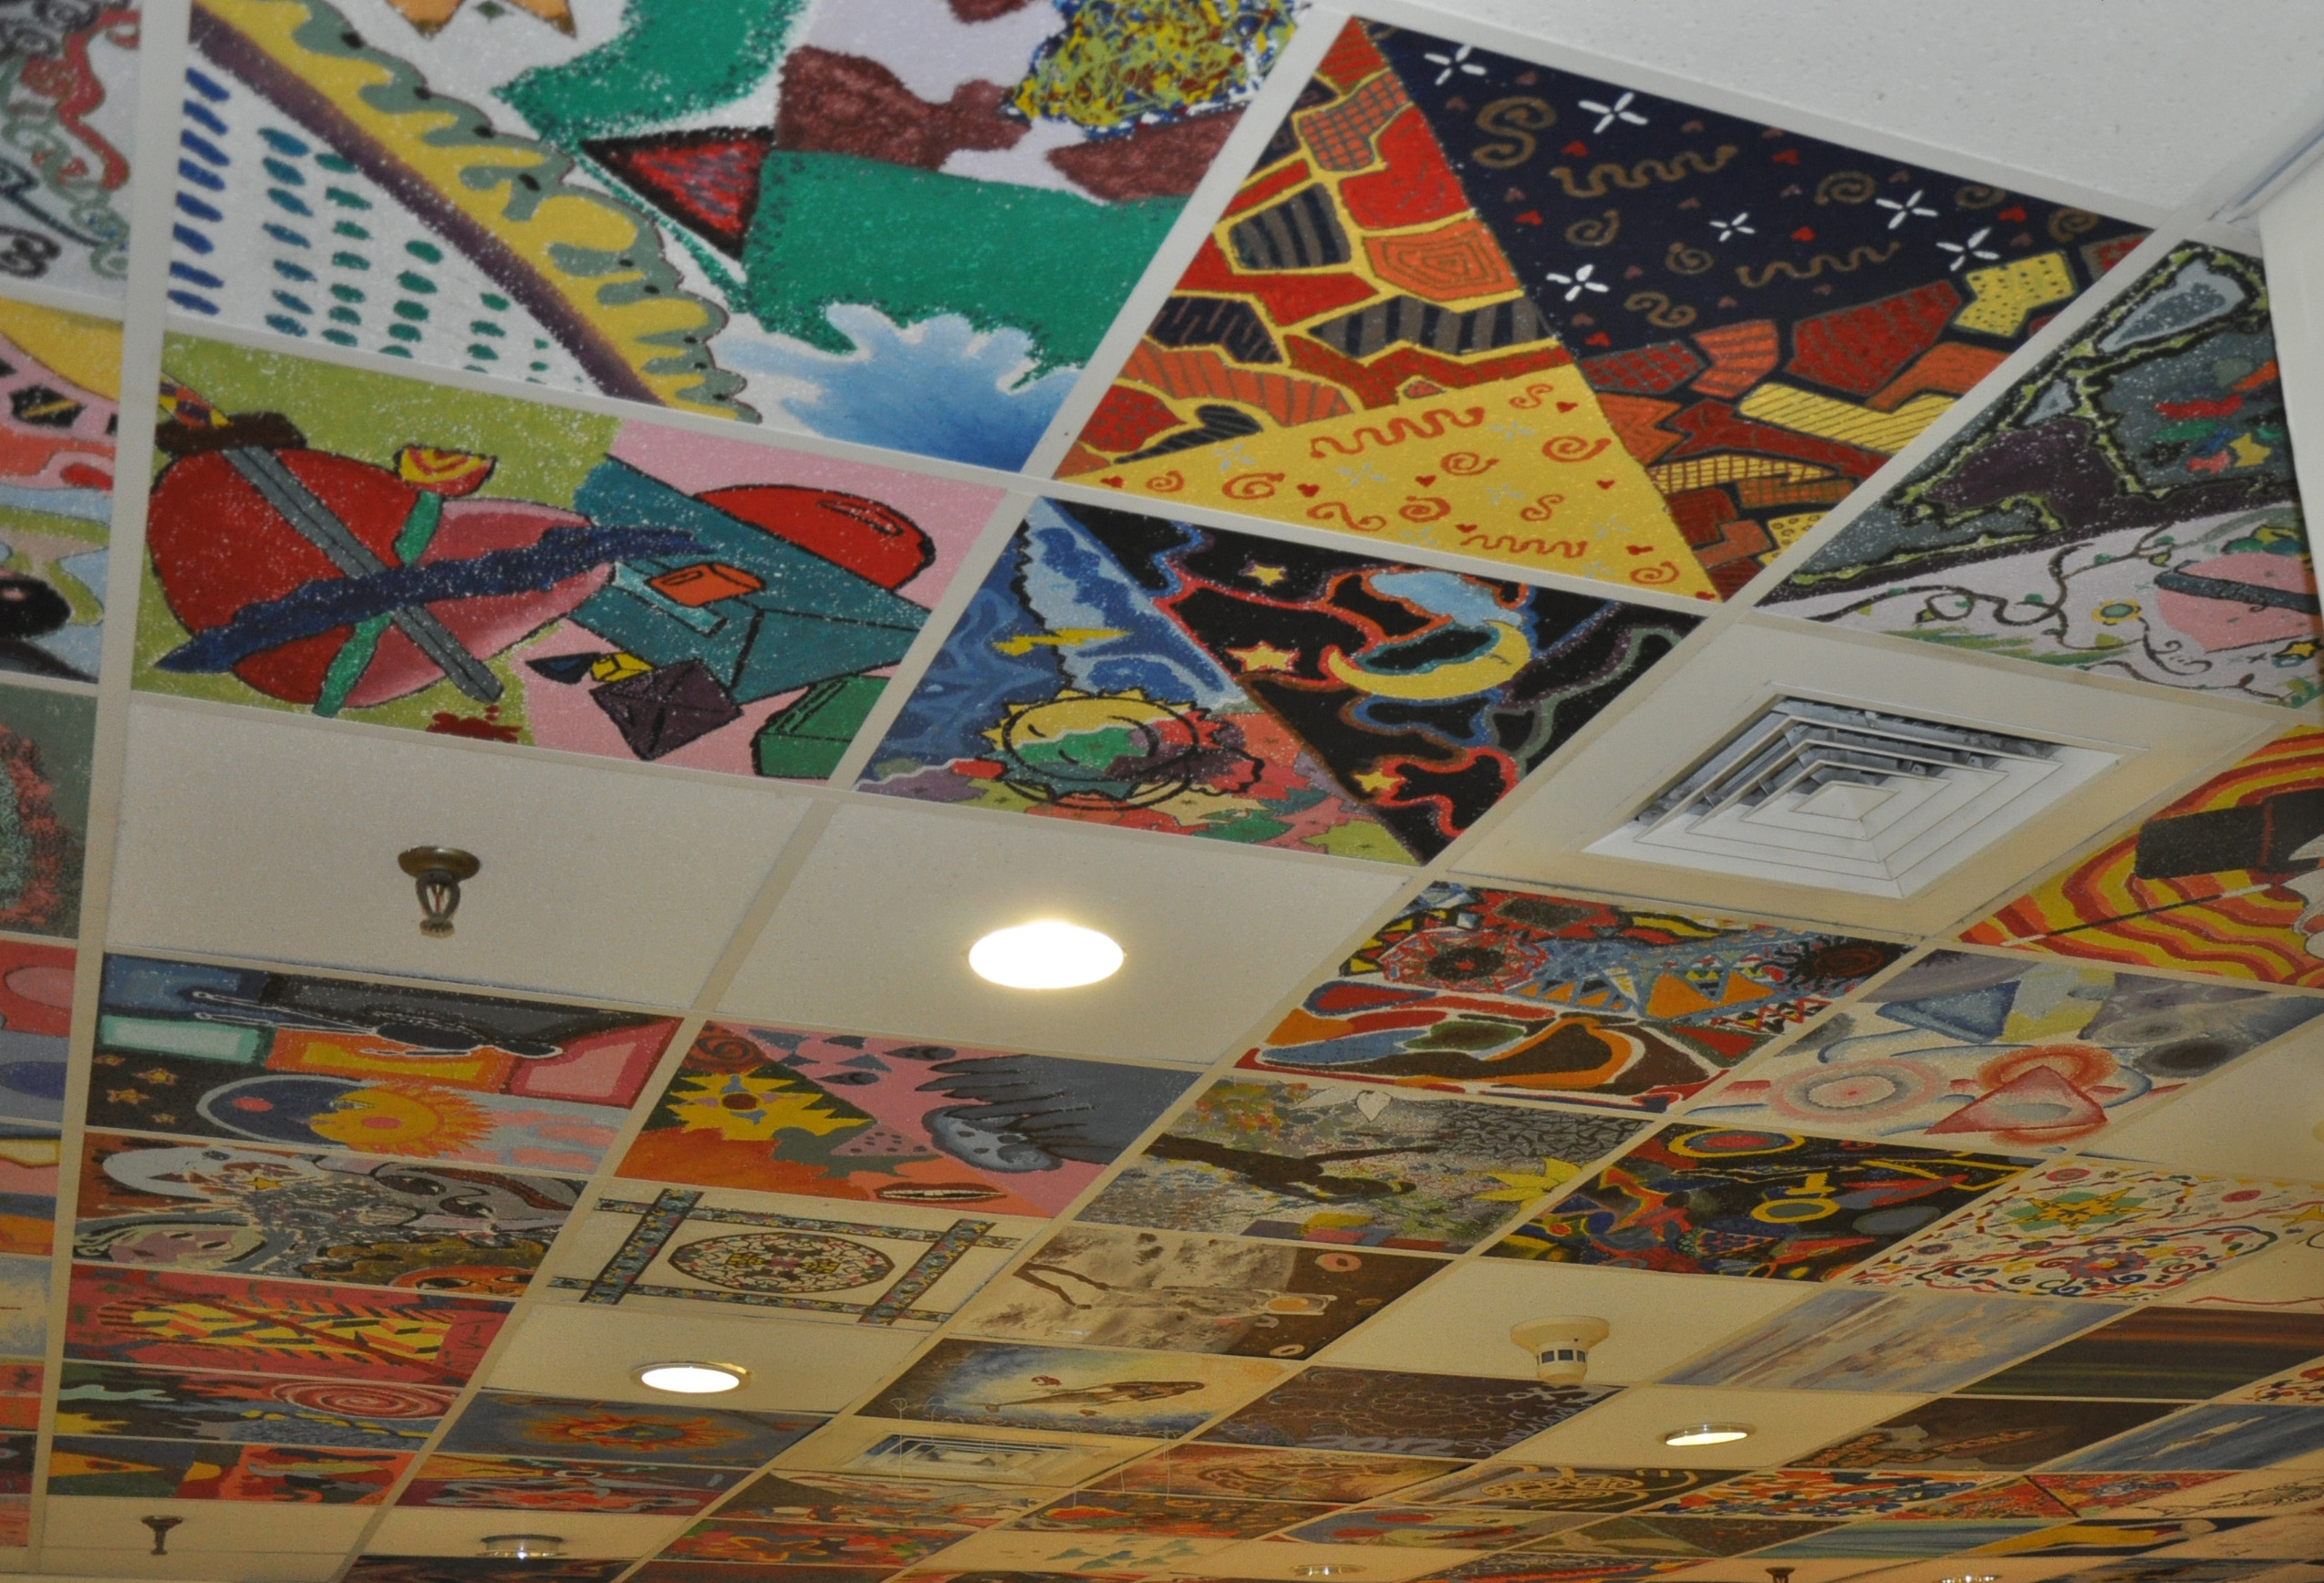 Sturgis East Ceiling Gallery Summer 2012 Sturgis